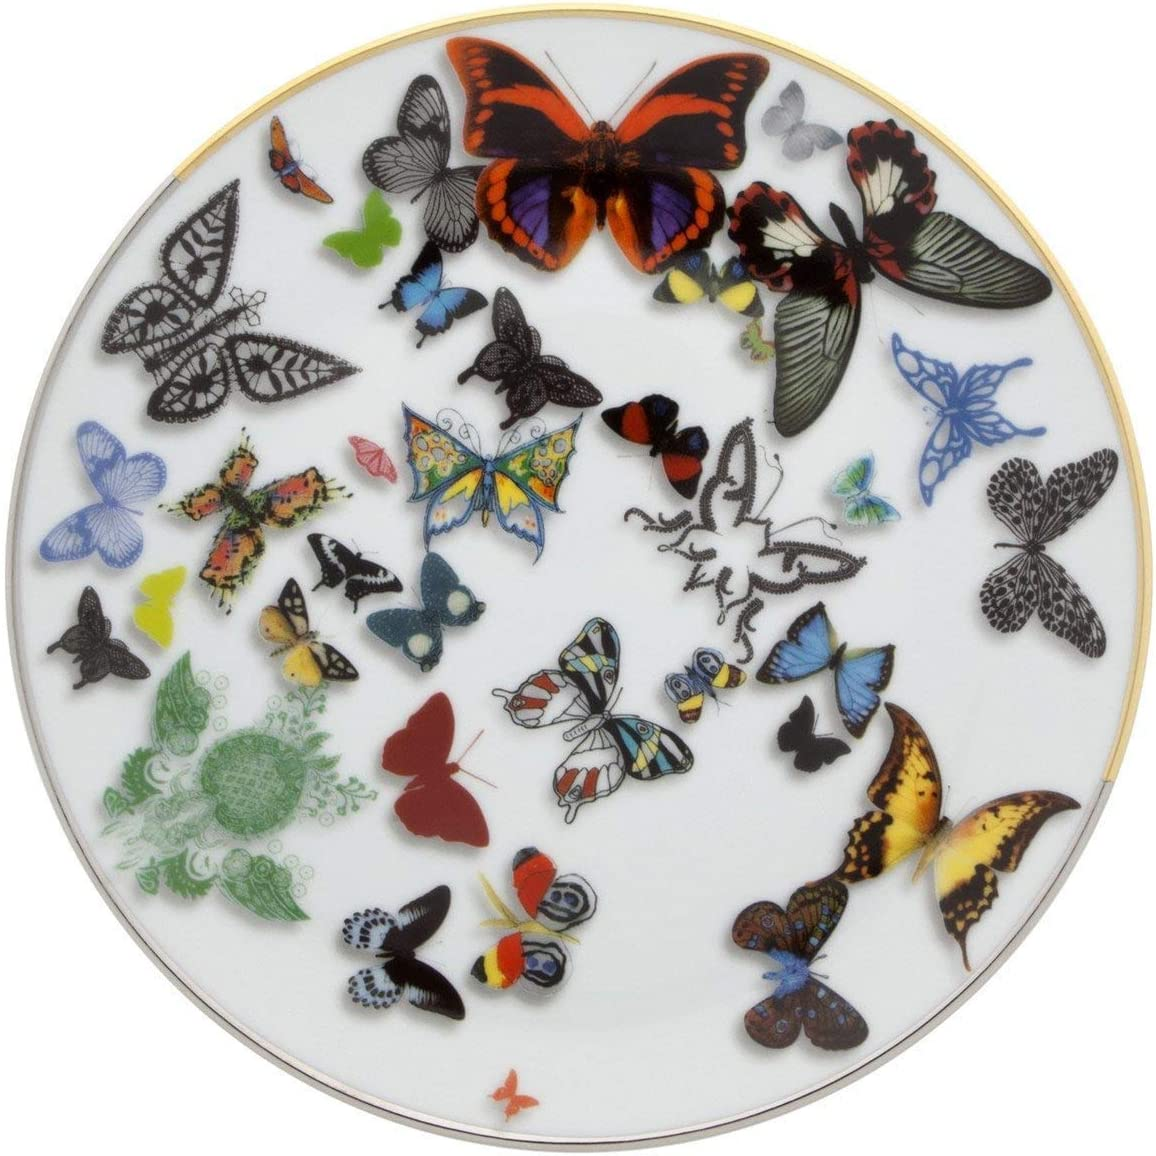 Cheap Dessert Plate-Christian Lacroix - Max 88% OFF Parade Butterfly